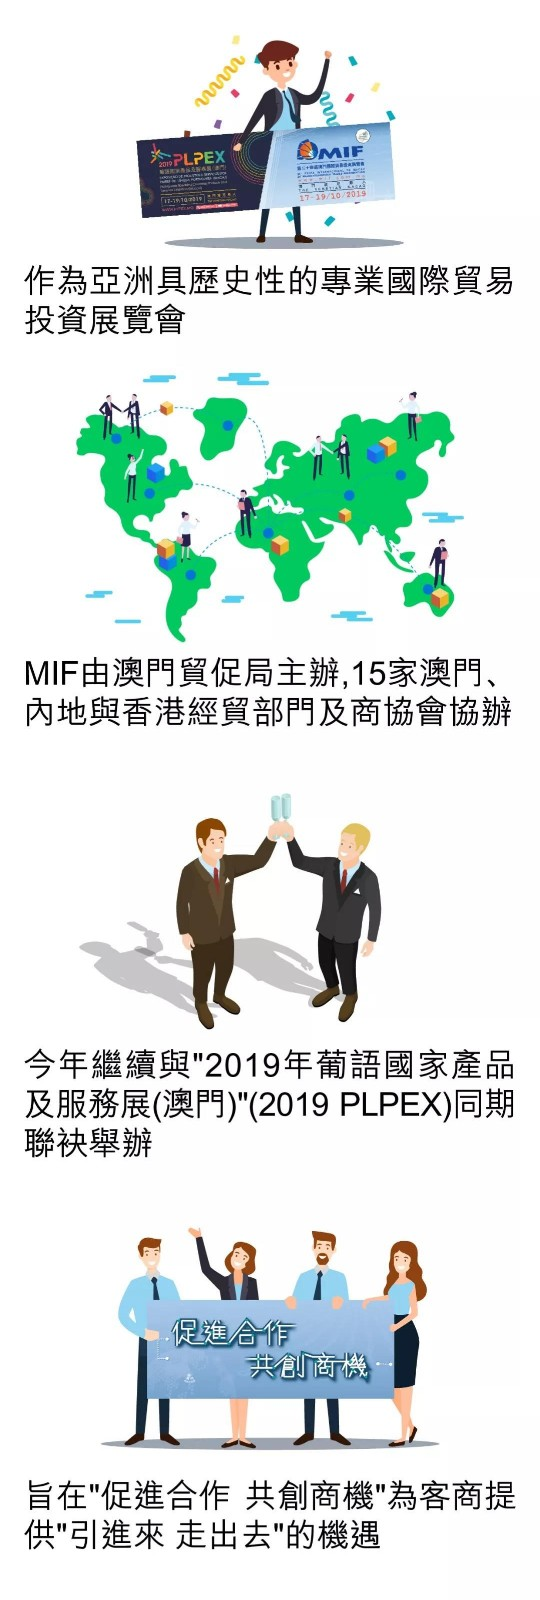 Runcheng Chuangzhan-National Day Scoop ② |Explore in MIF,Feel the Collision and Fusion of Diverse Cu-3